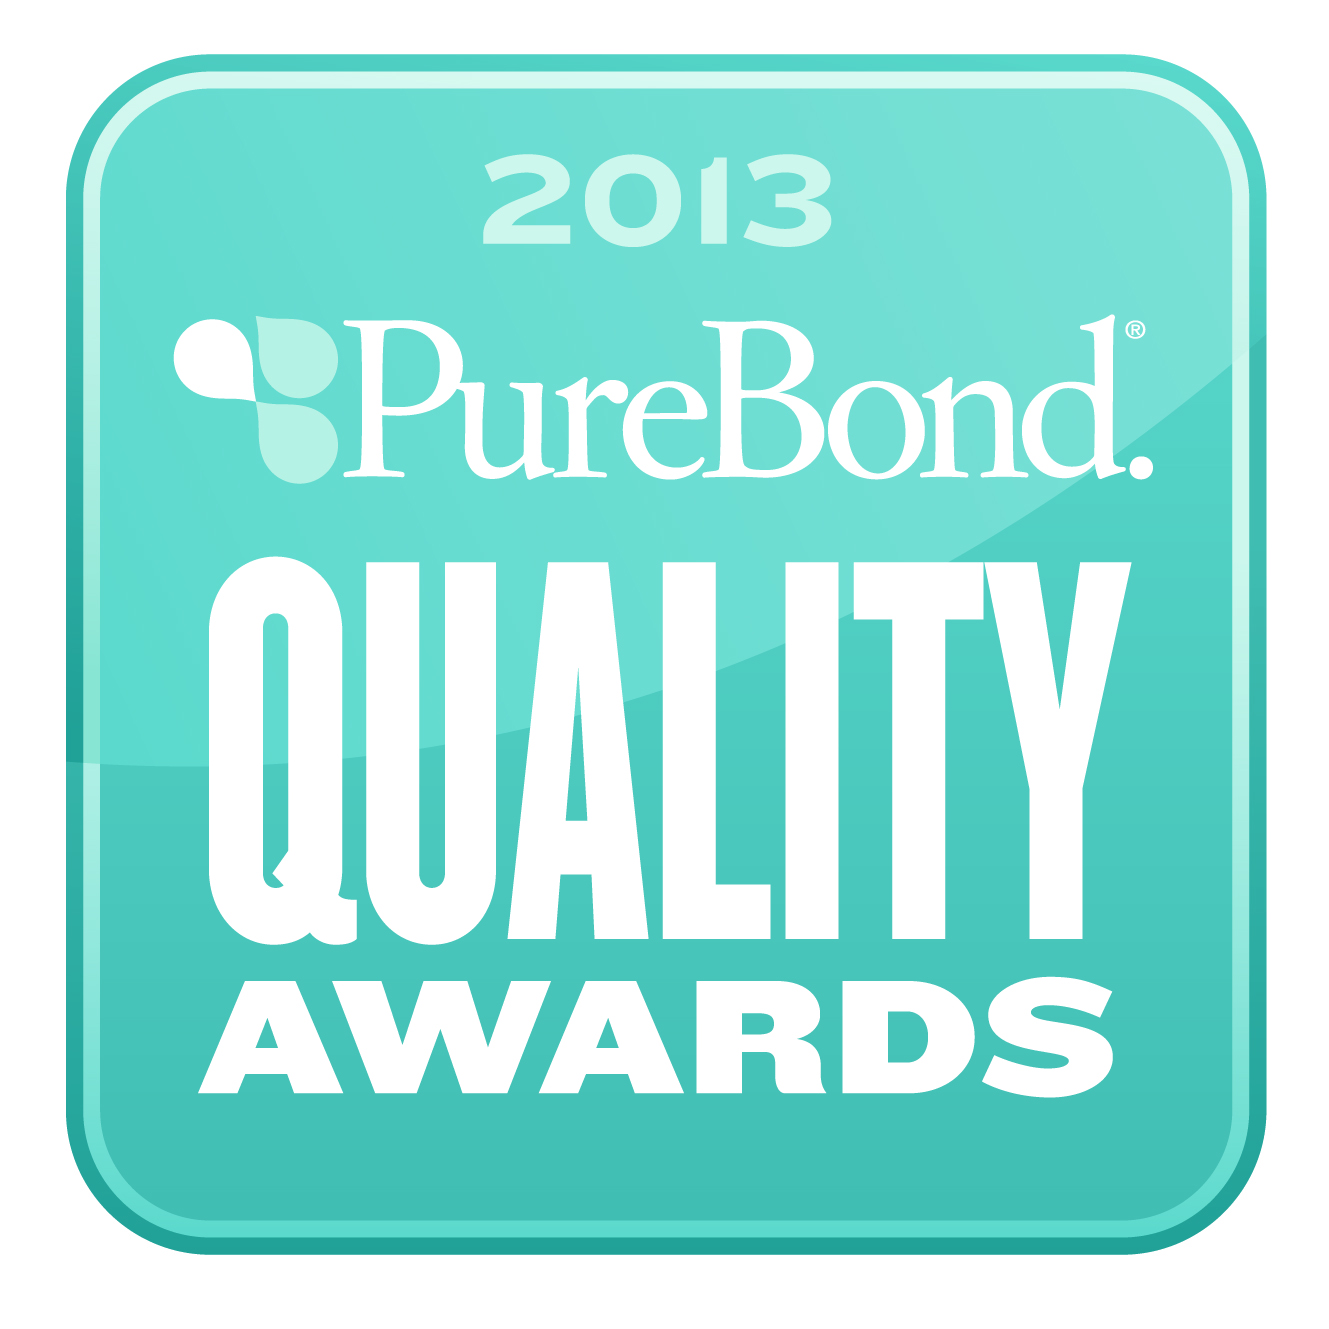 quality award International quality awards by brands impact exclusive endorsement for quality products & services only deserving brands & individuals may apply.